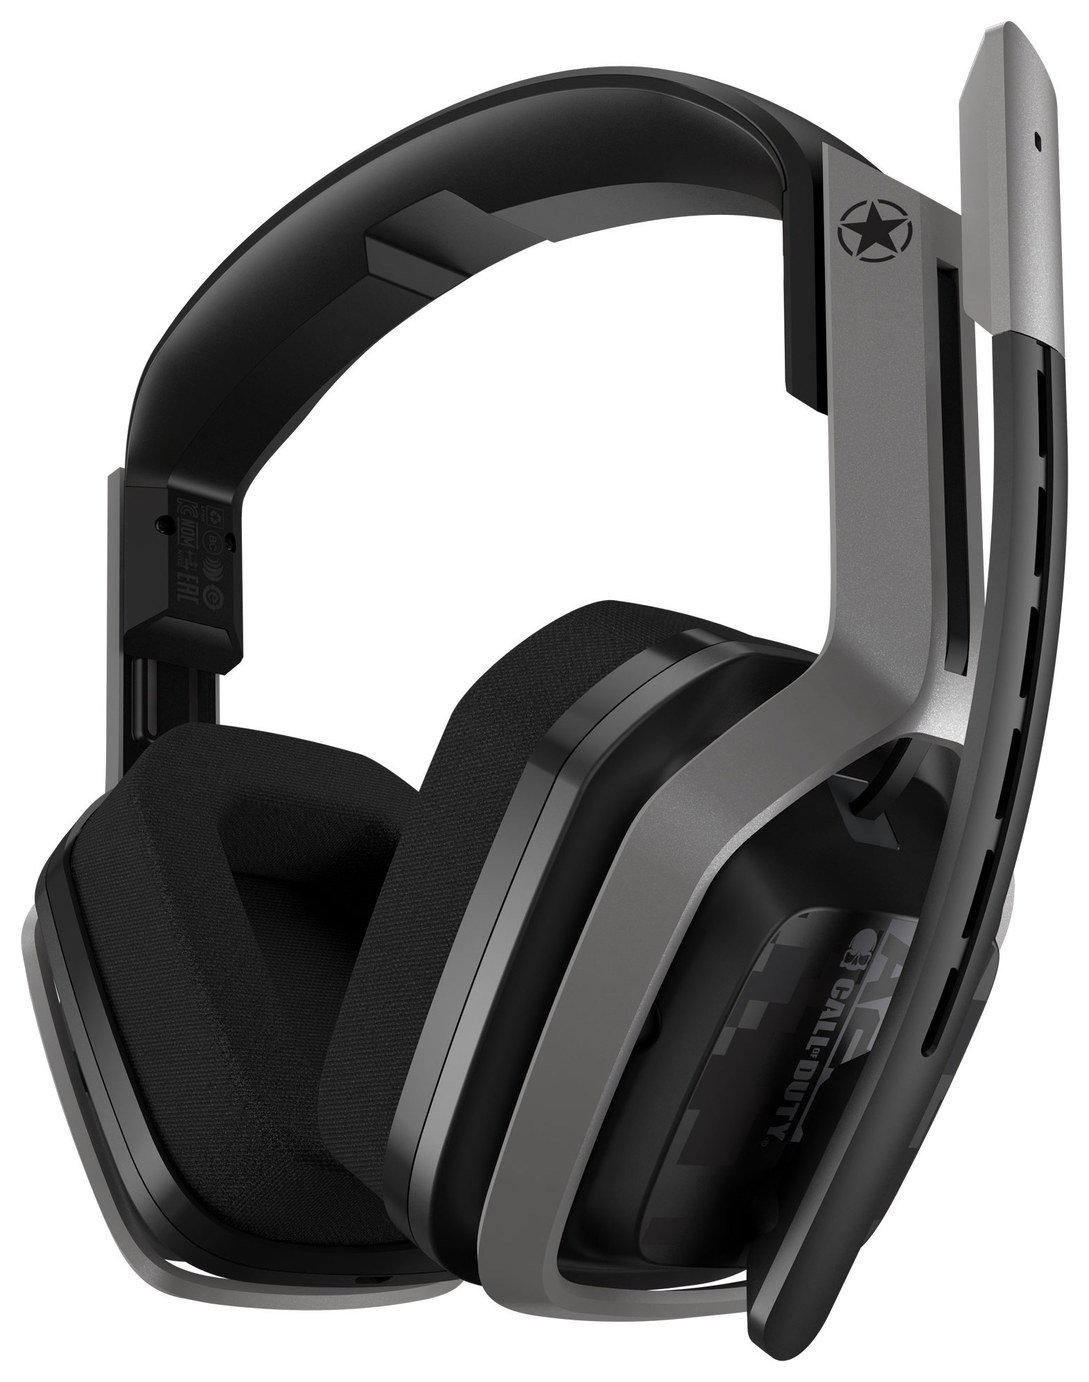 Image of Astro A20 Silver COD Xbox One Gaming Headset